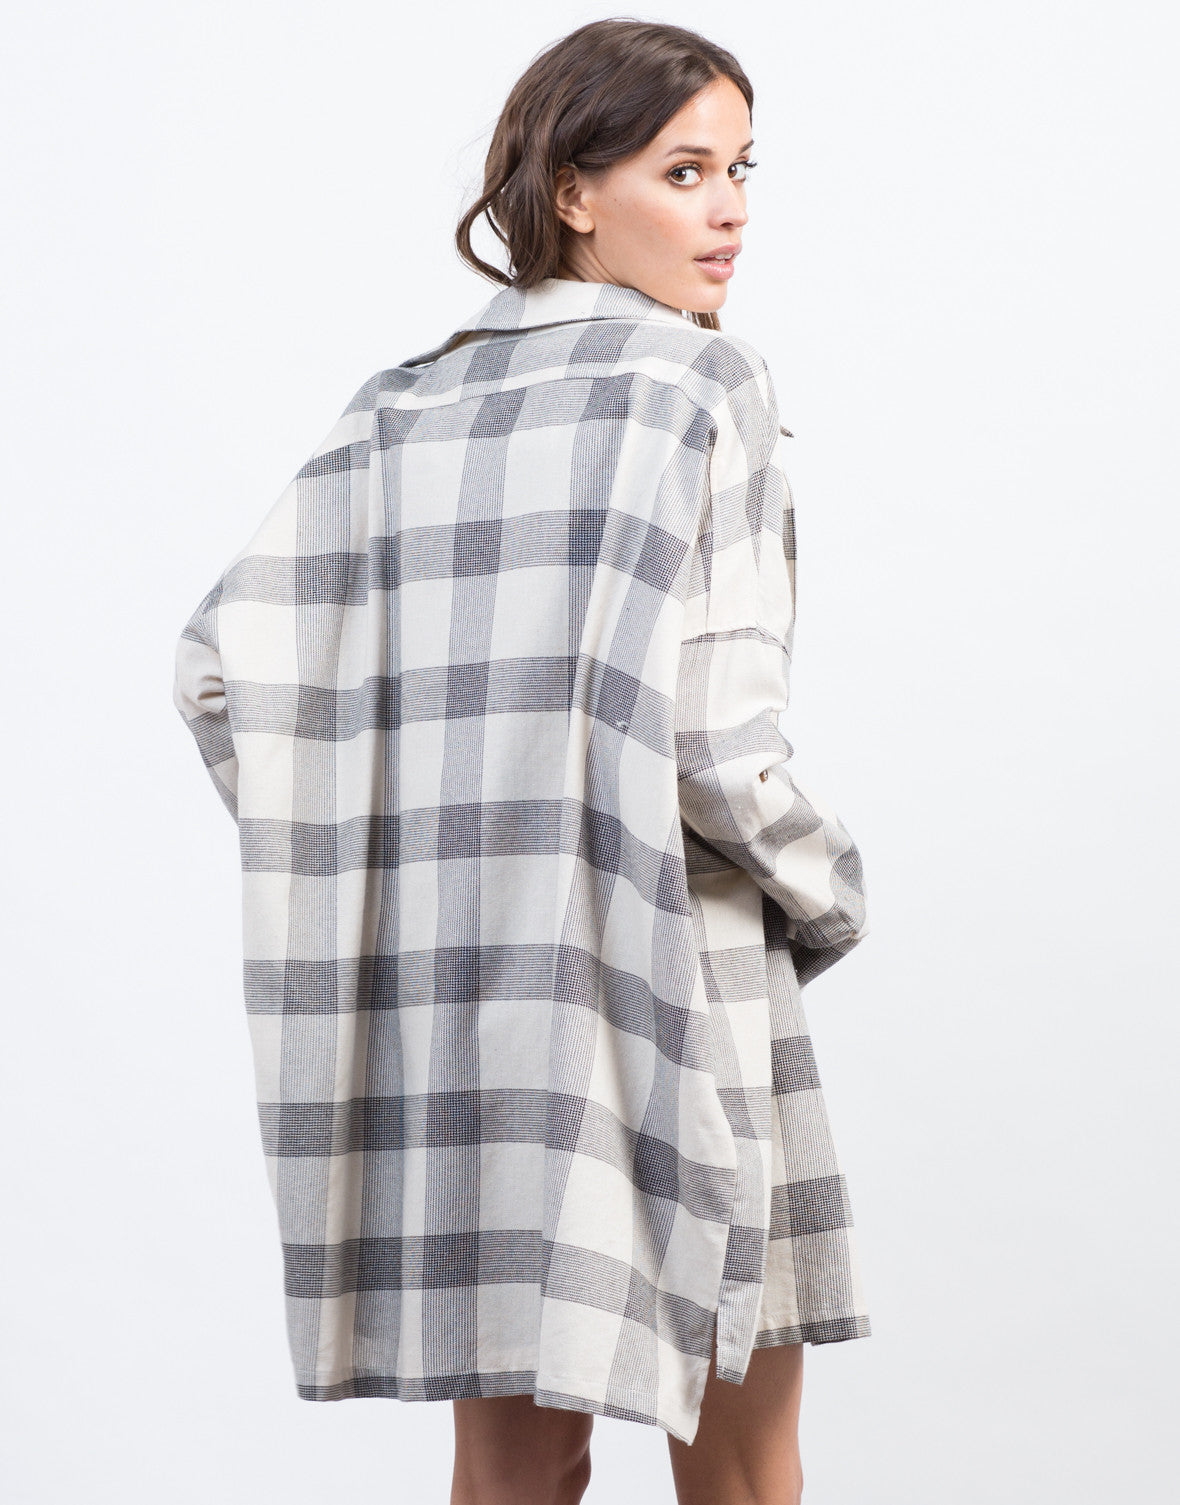 Back View of Checkered Boyfriend Flannel